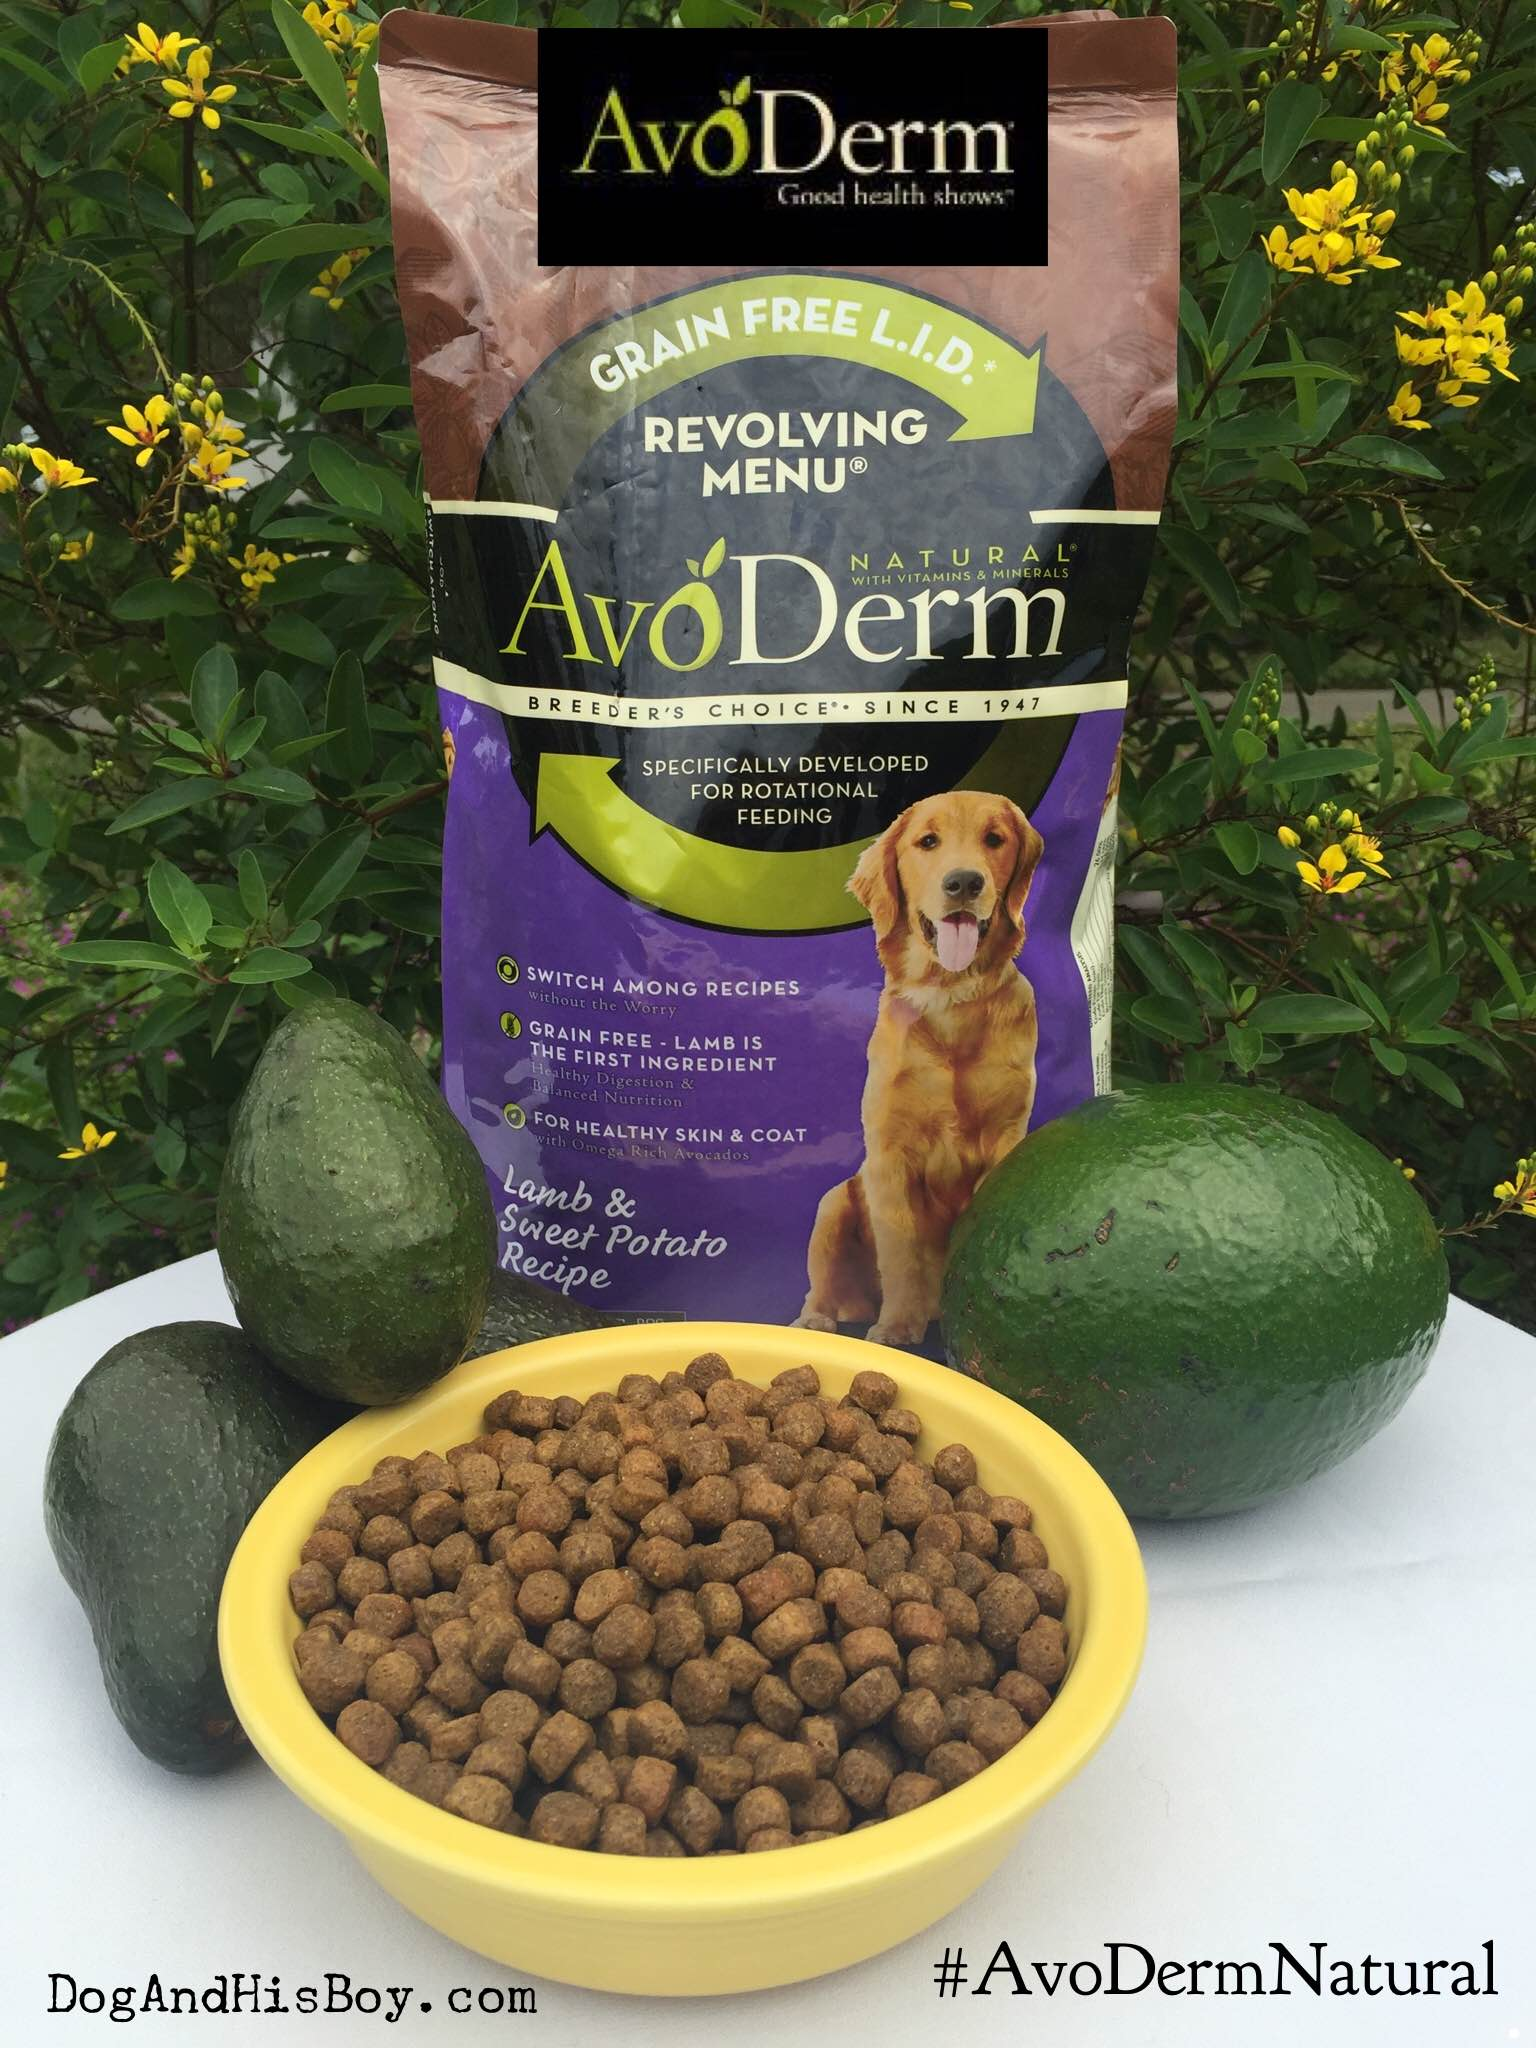 AvoDerm Natural, Deaf Dog Nutrition, Feeding avocados to dogs